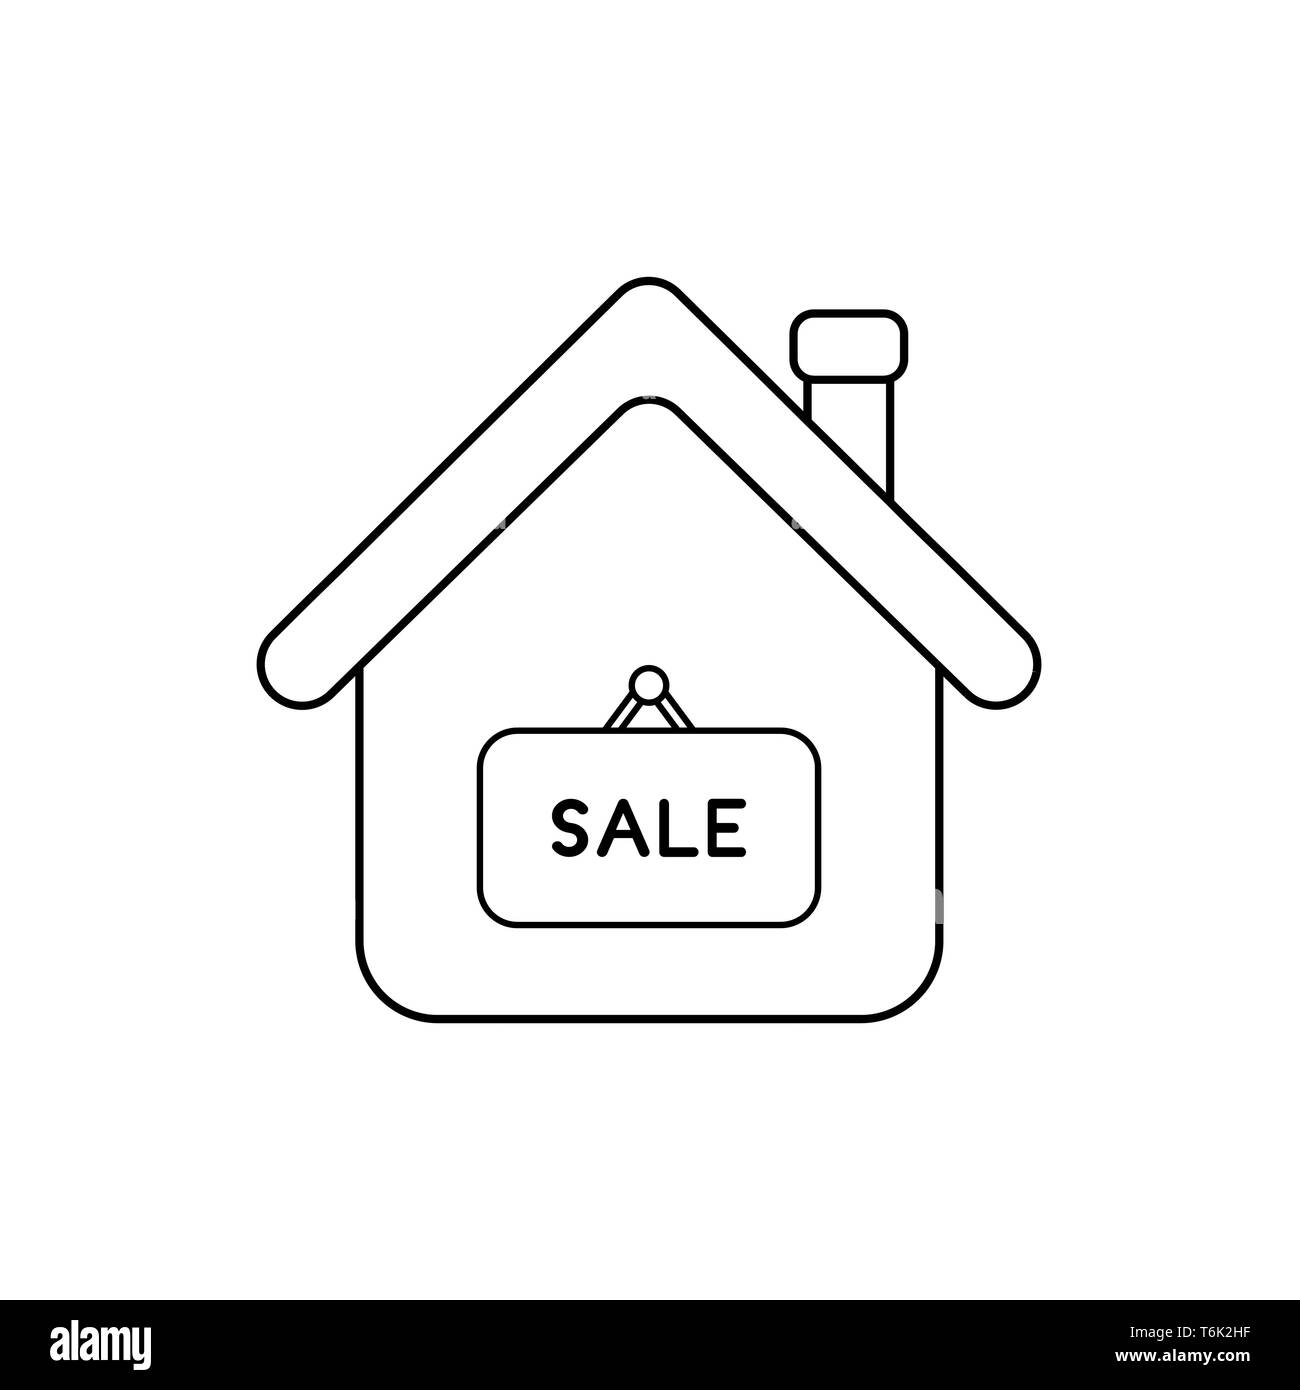 Vector icon concept of house with sale word written on hanging sign. Black outlines. - Stock Image